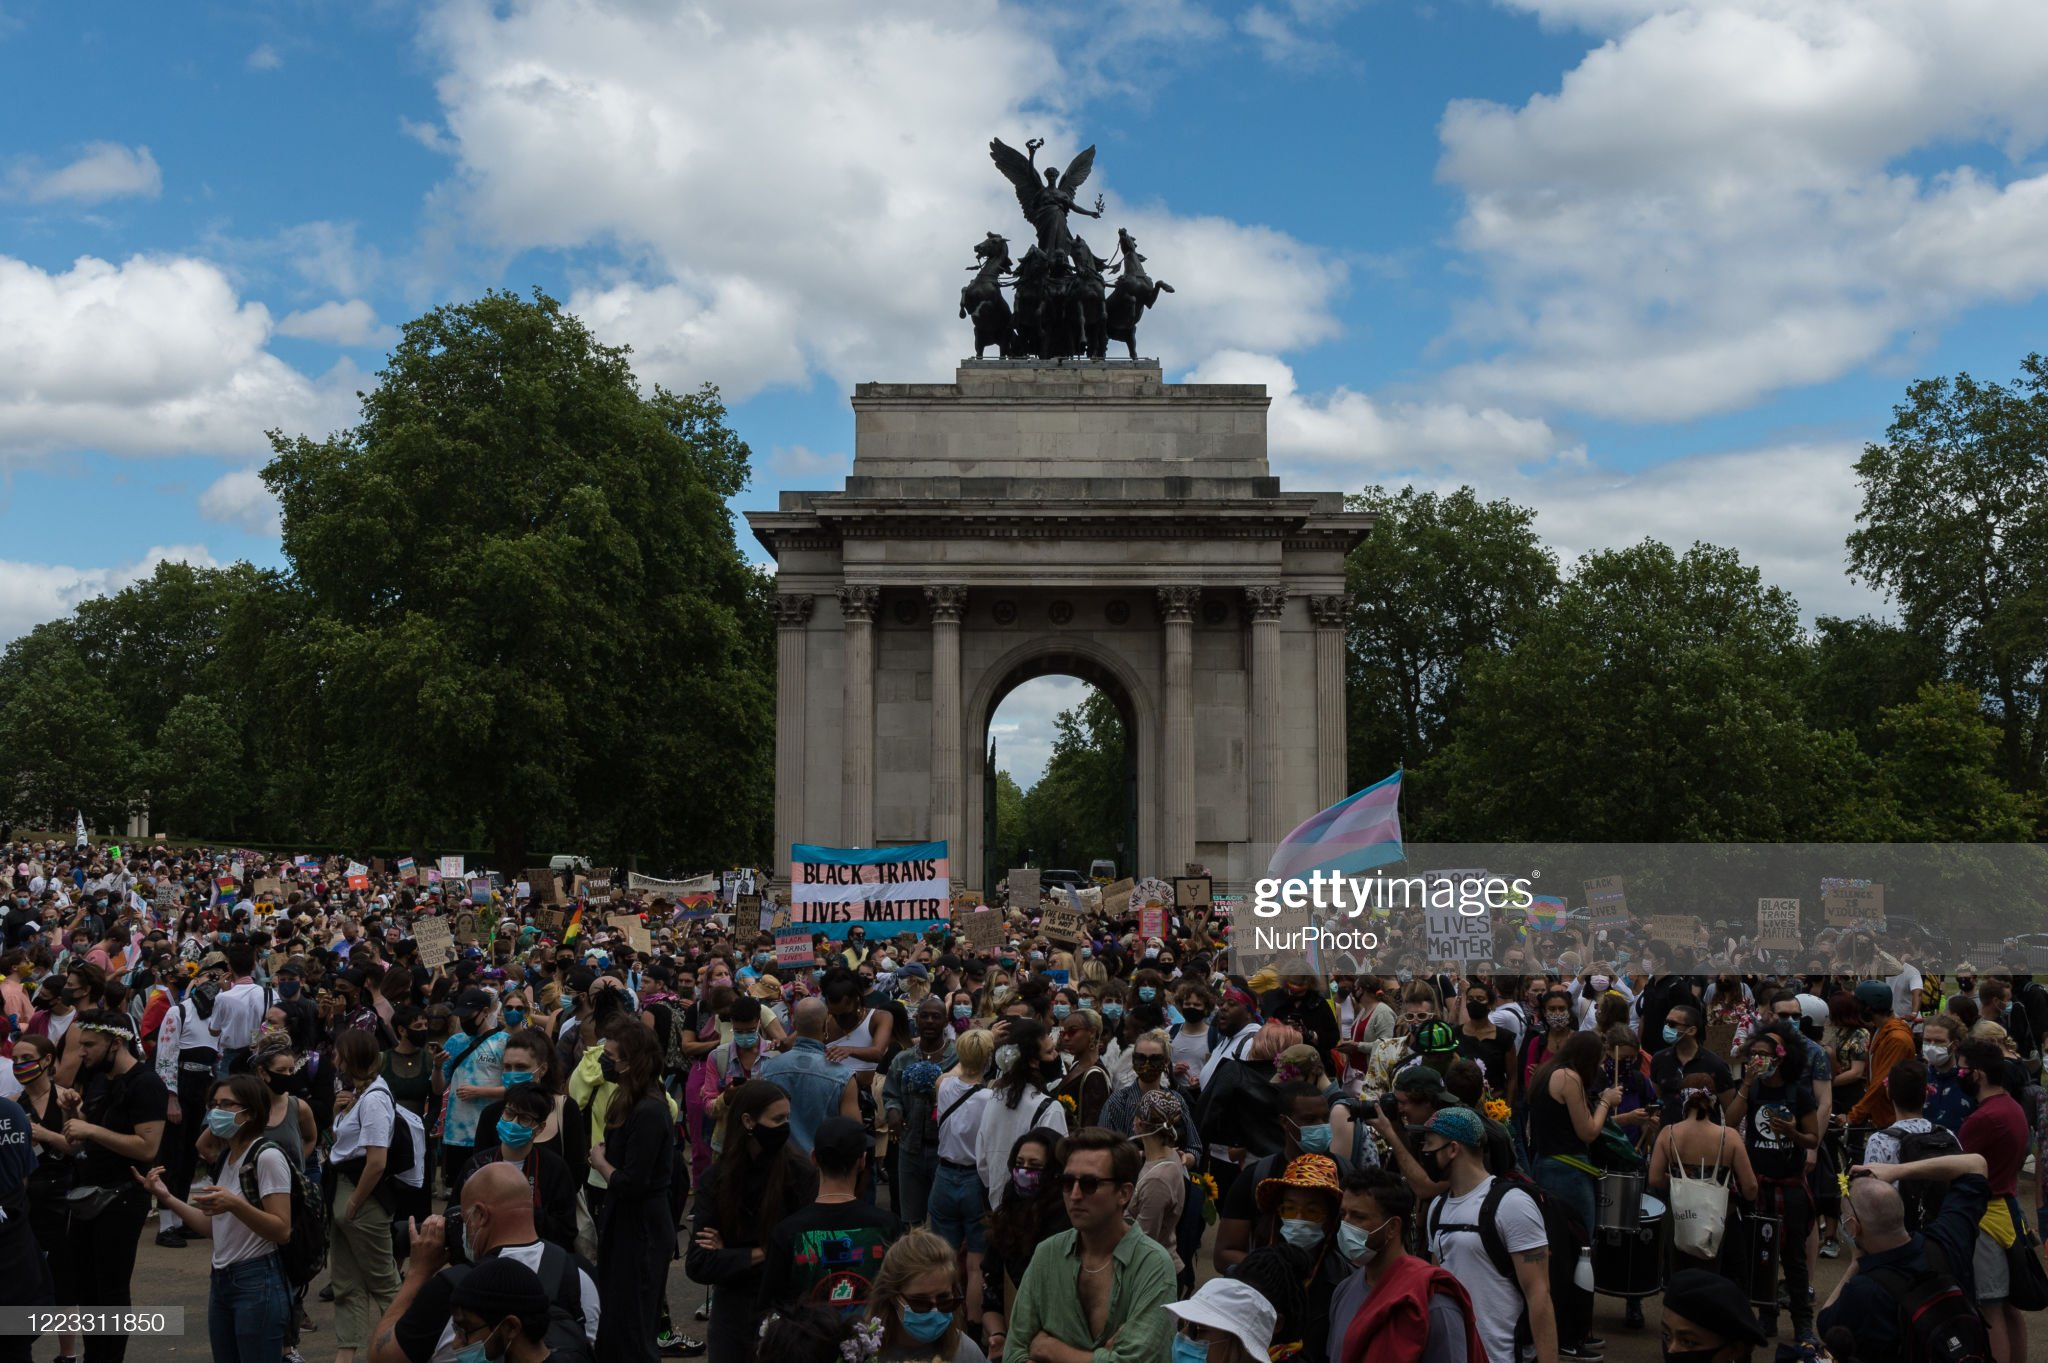 Black Trans Lives Matter Protest In London : News Photo